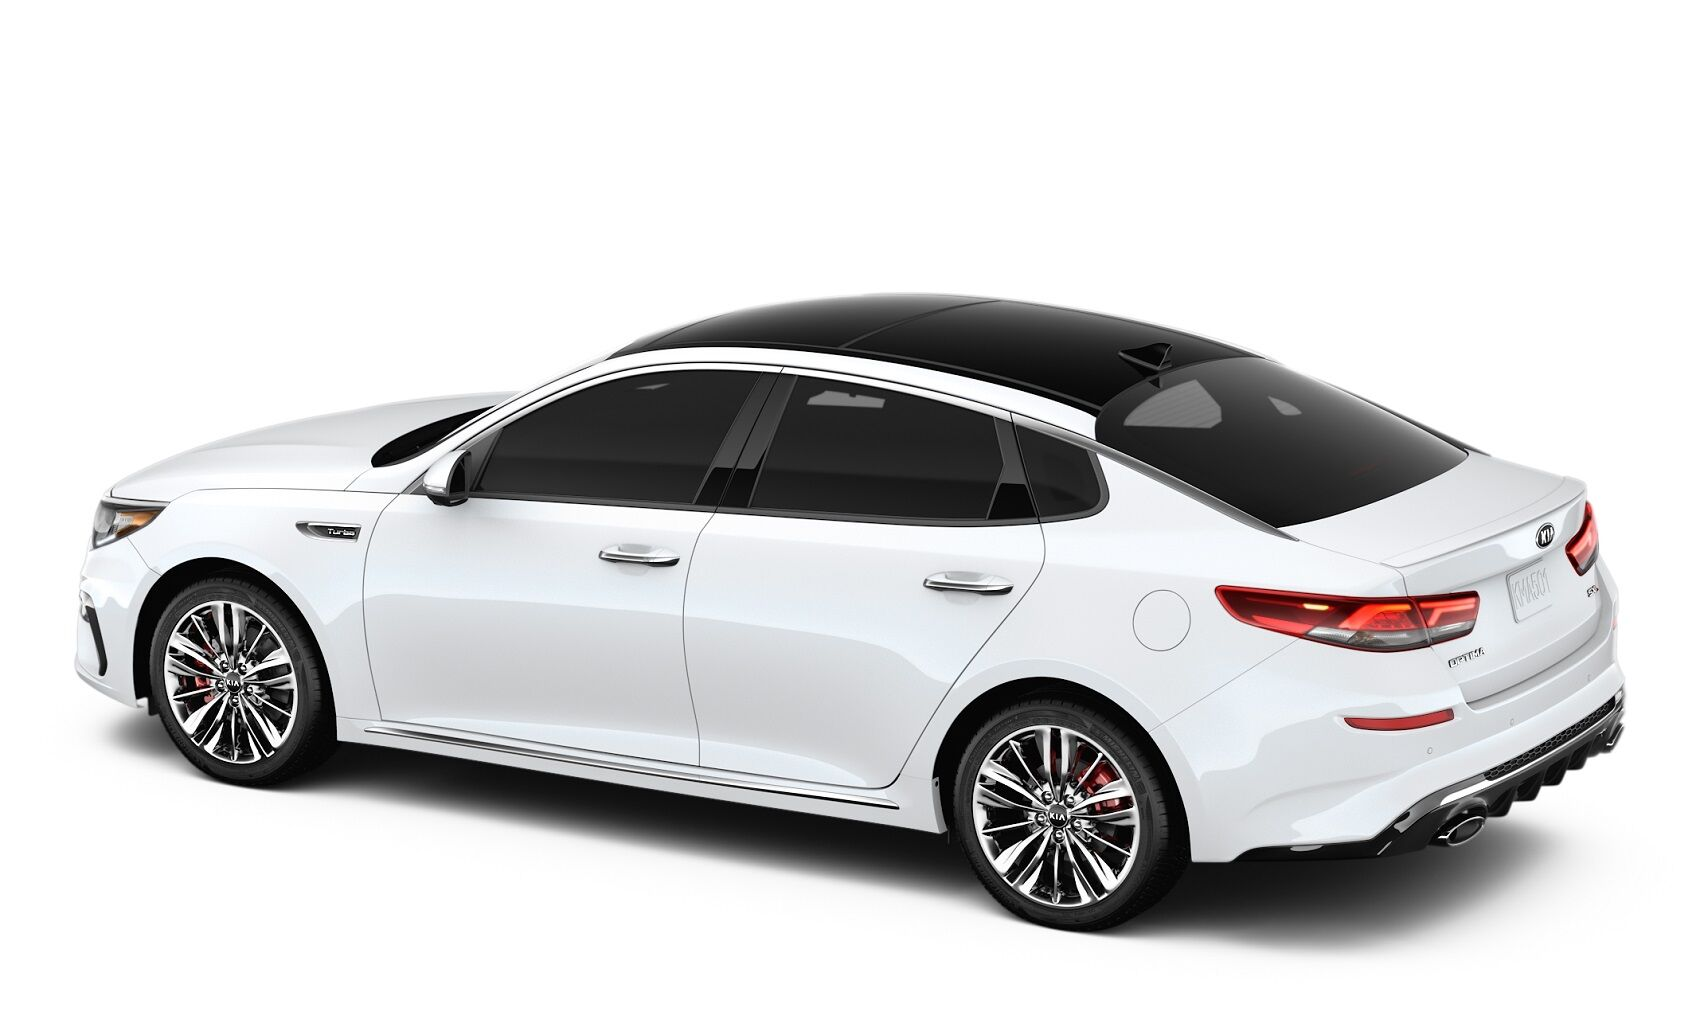 Kia Optima MPG Review